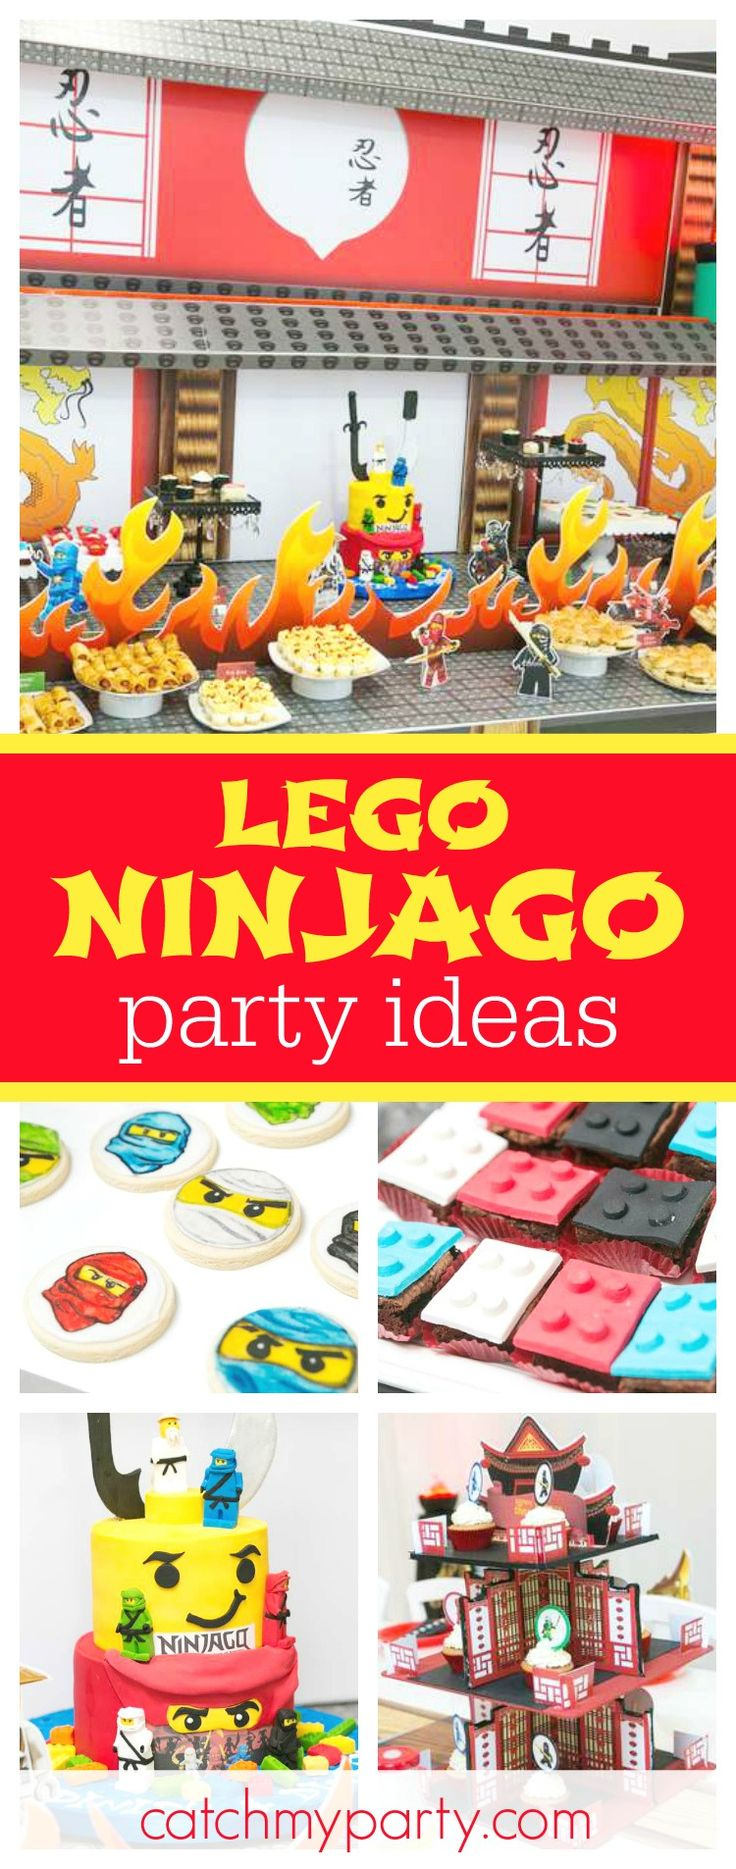 Check out this awesome Lego Ninjago birthday party. The dessert table and the backdrop are incredible!! See more party ideas and share yours at CatchMyParty.com